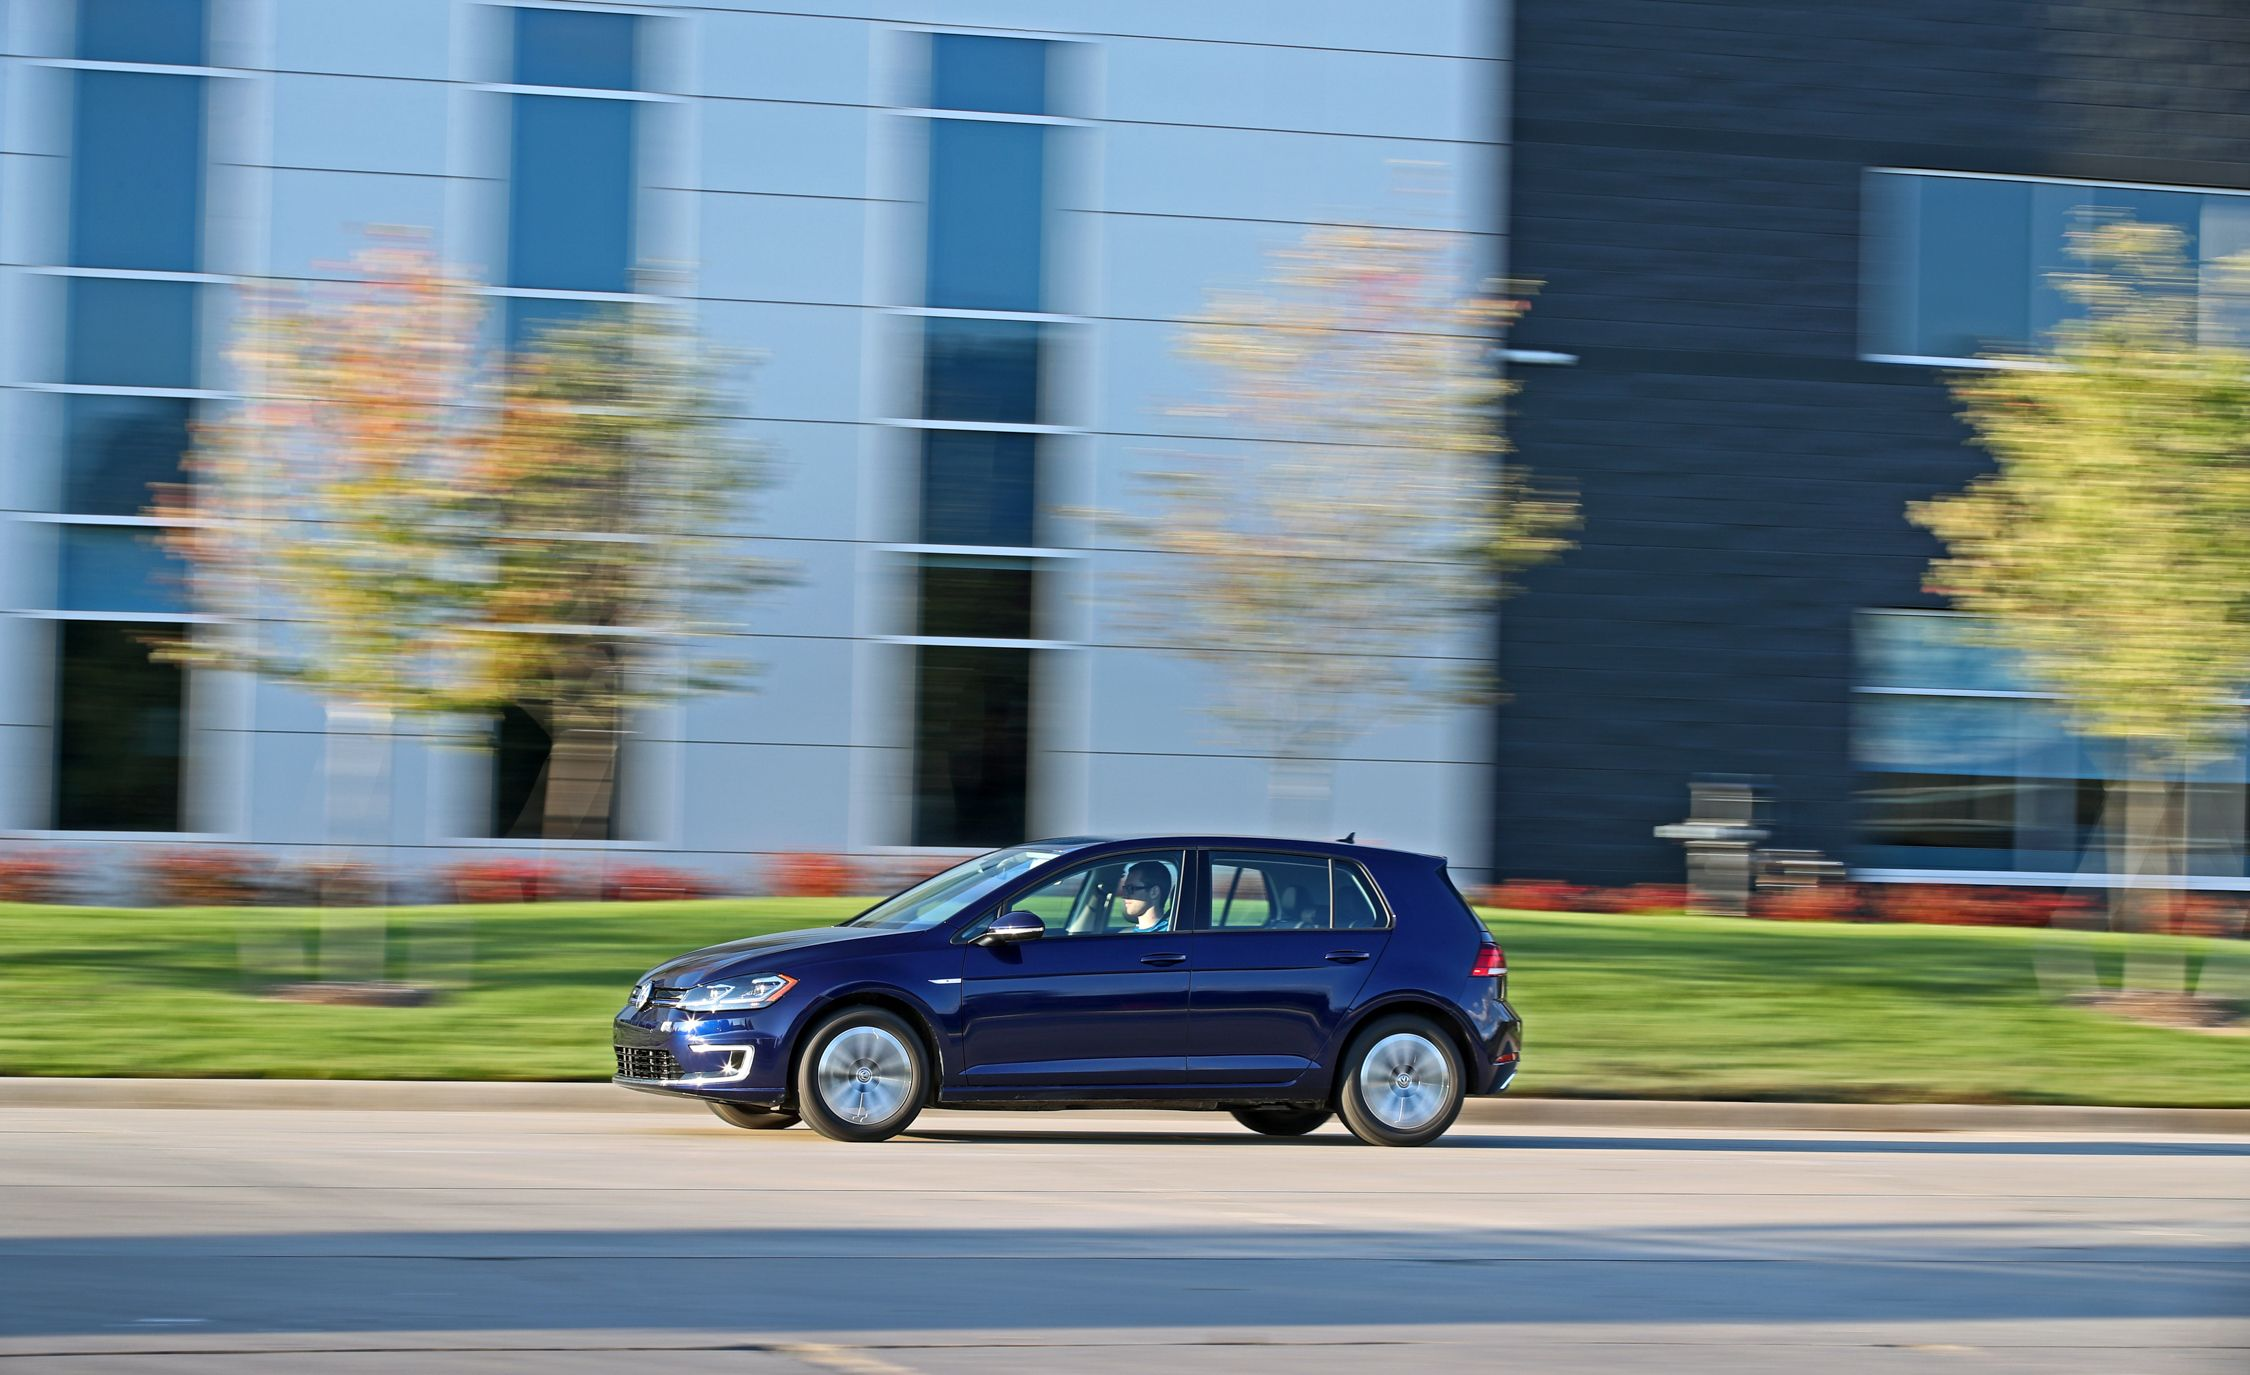 Volkswagen E Golf Reviews Price Photos And Smart Fuse Box Wiki Specs Car Driver